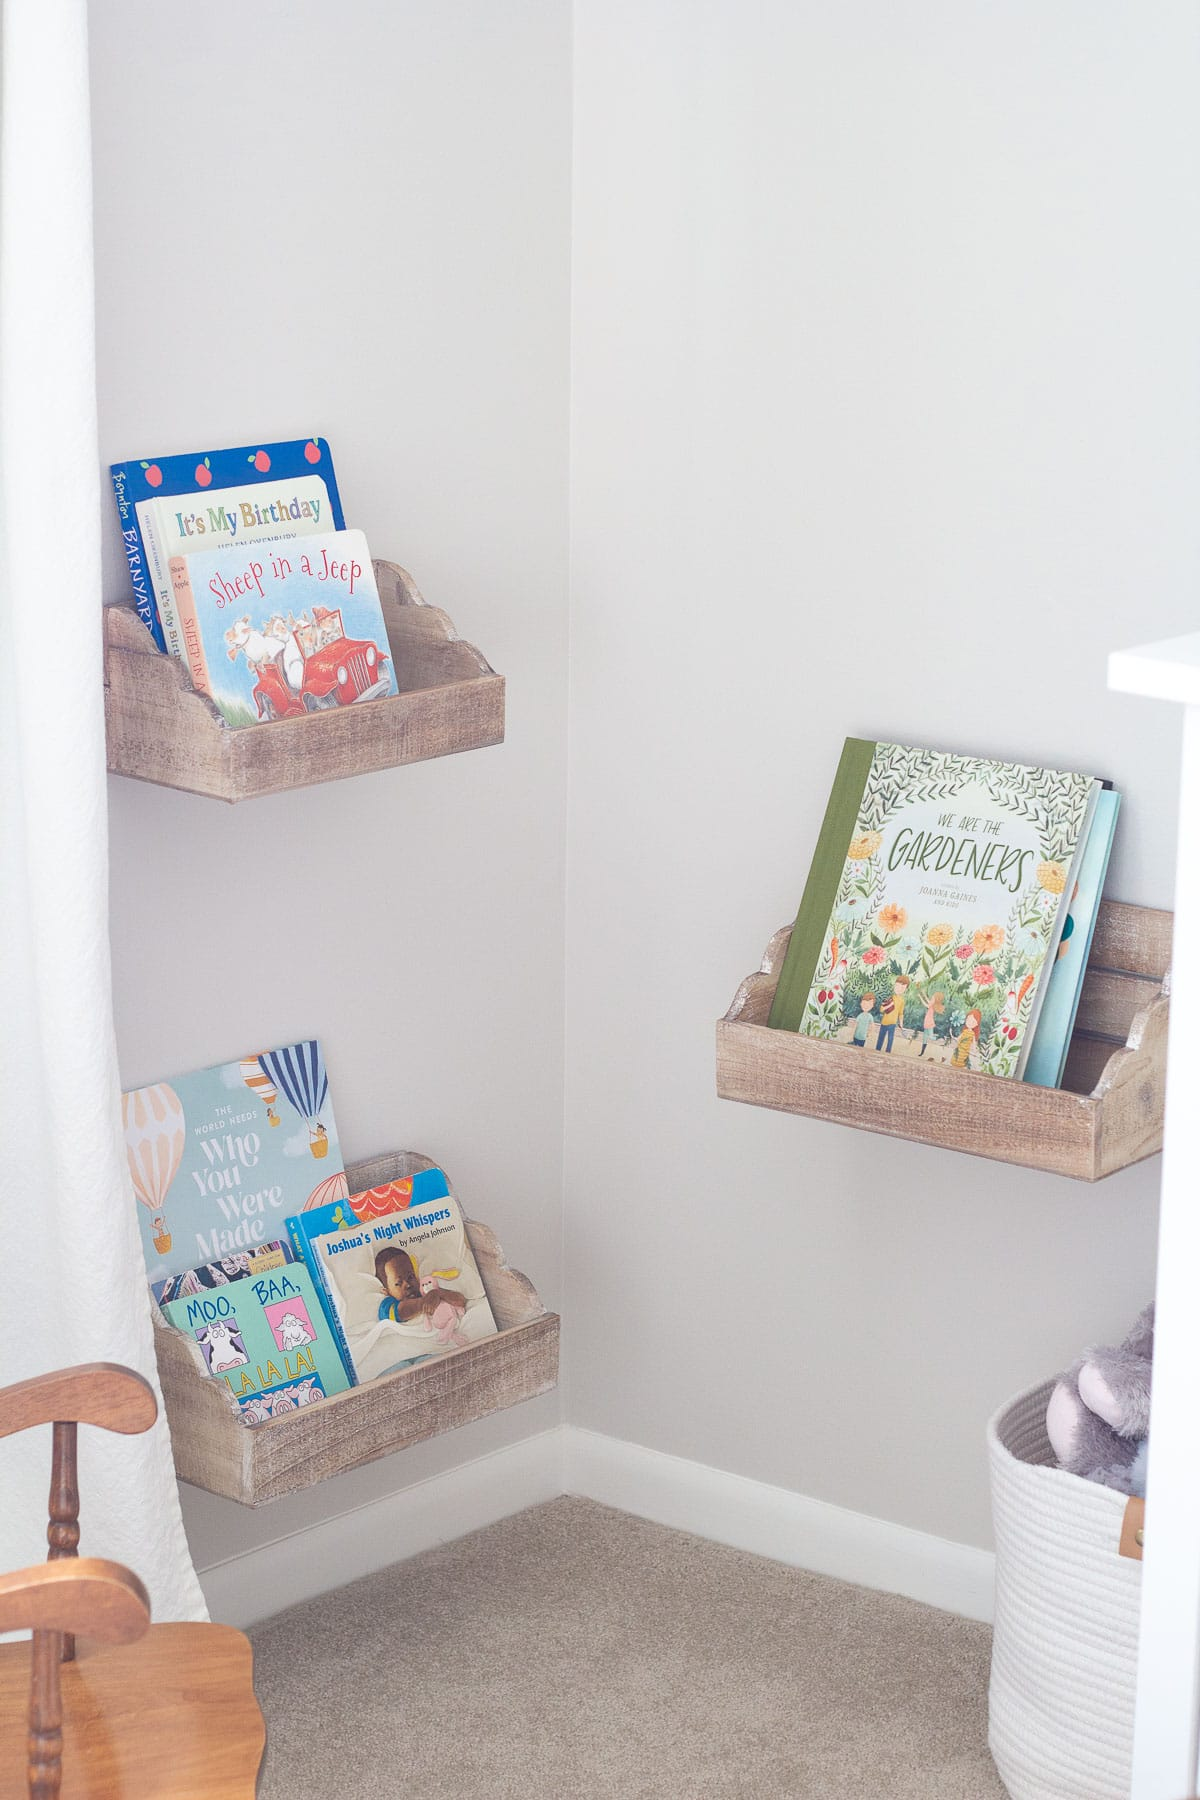 Kids' books in a nursery displayed in floating shelves from Hobby Lobby.